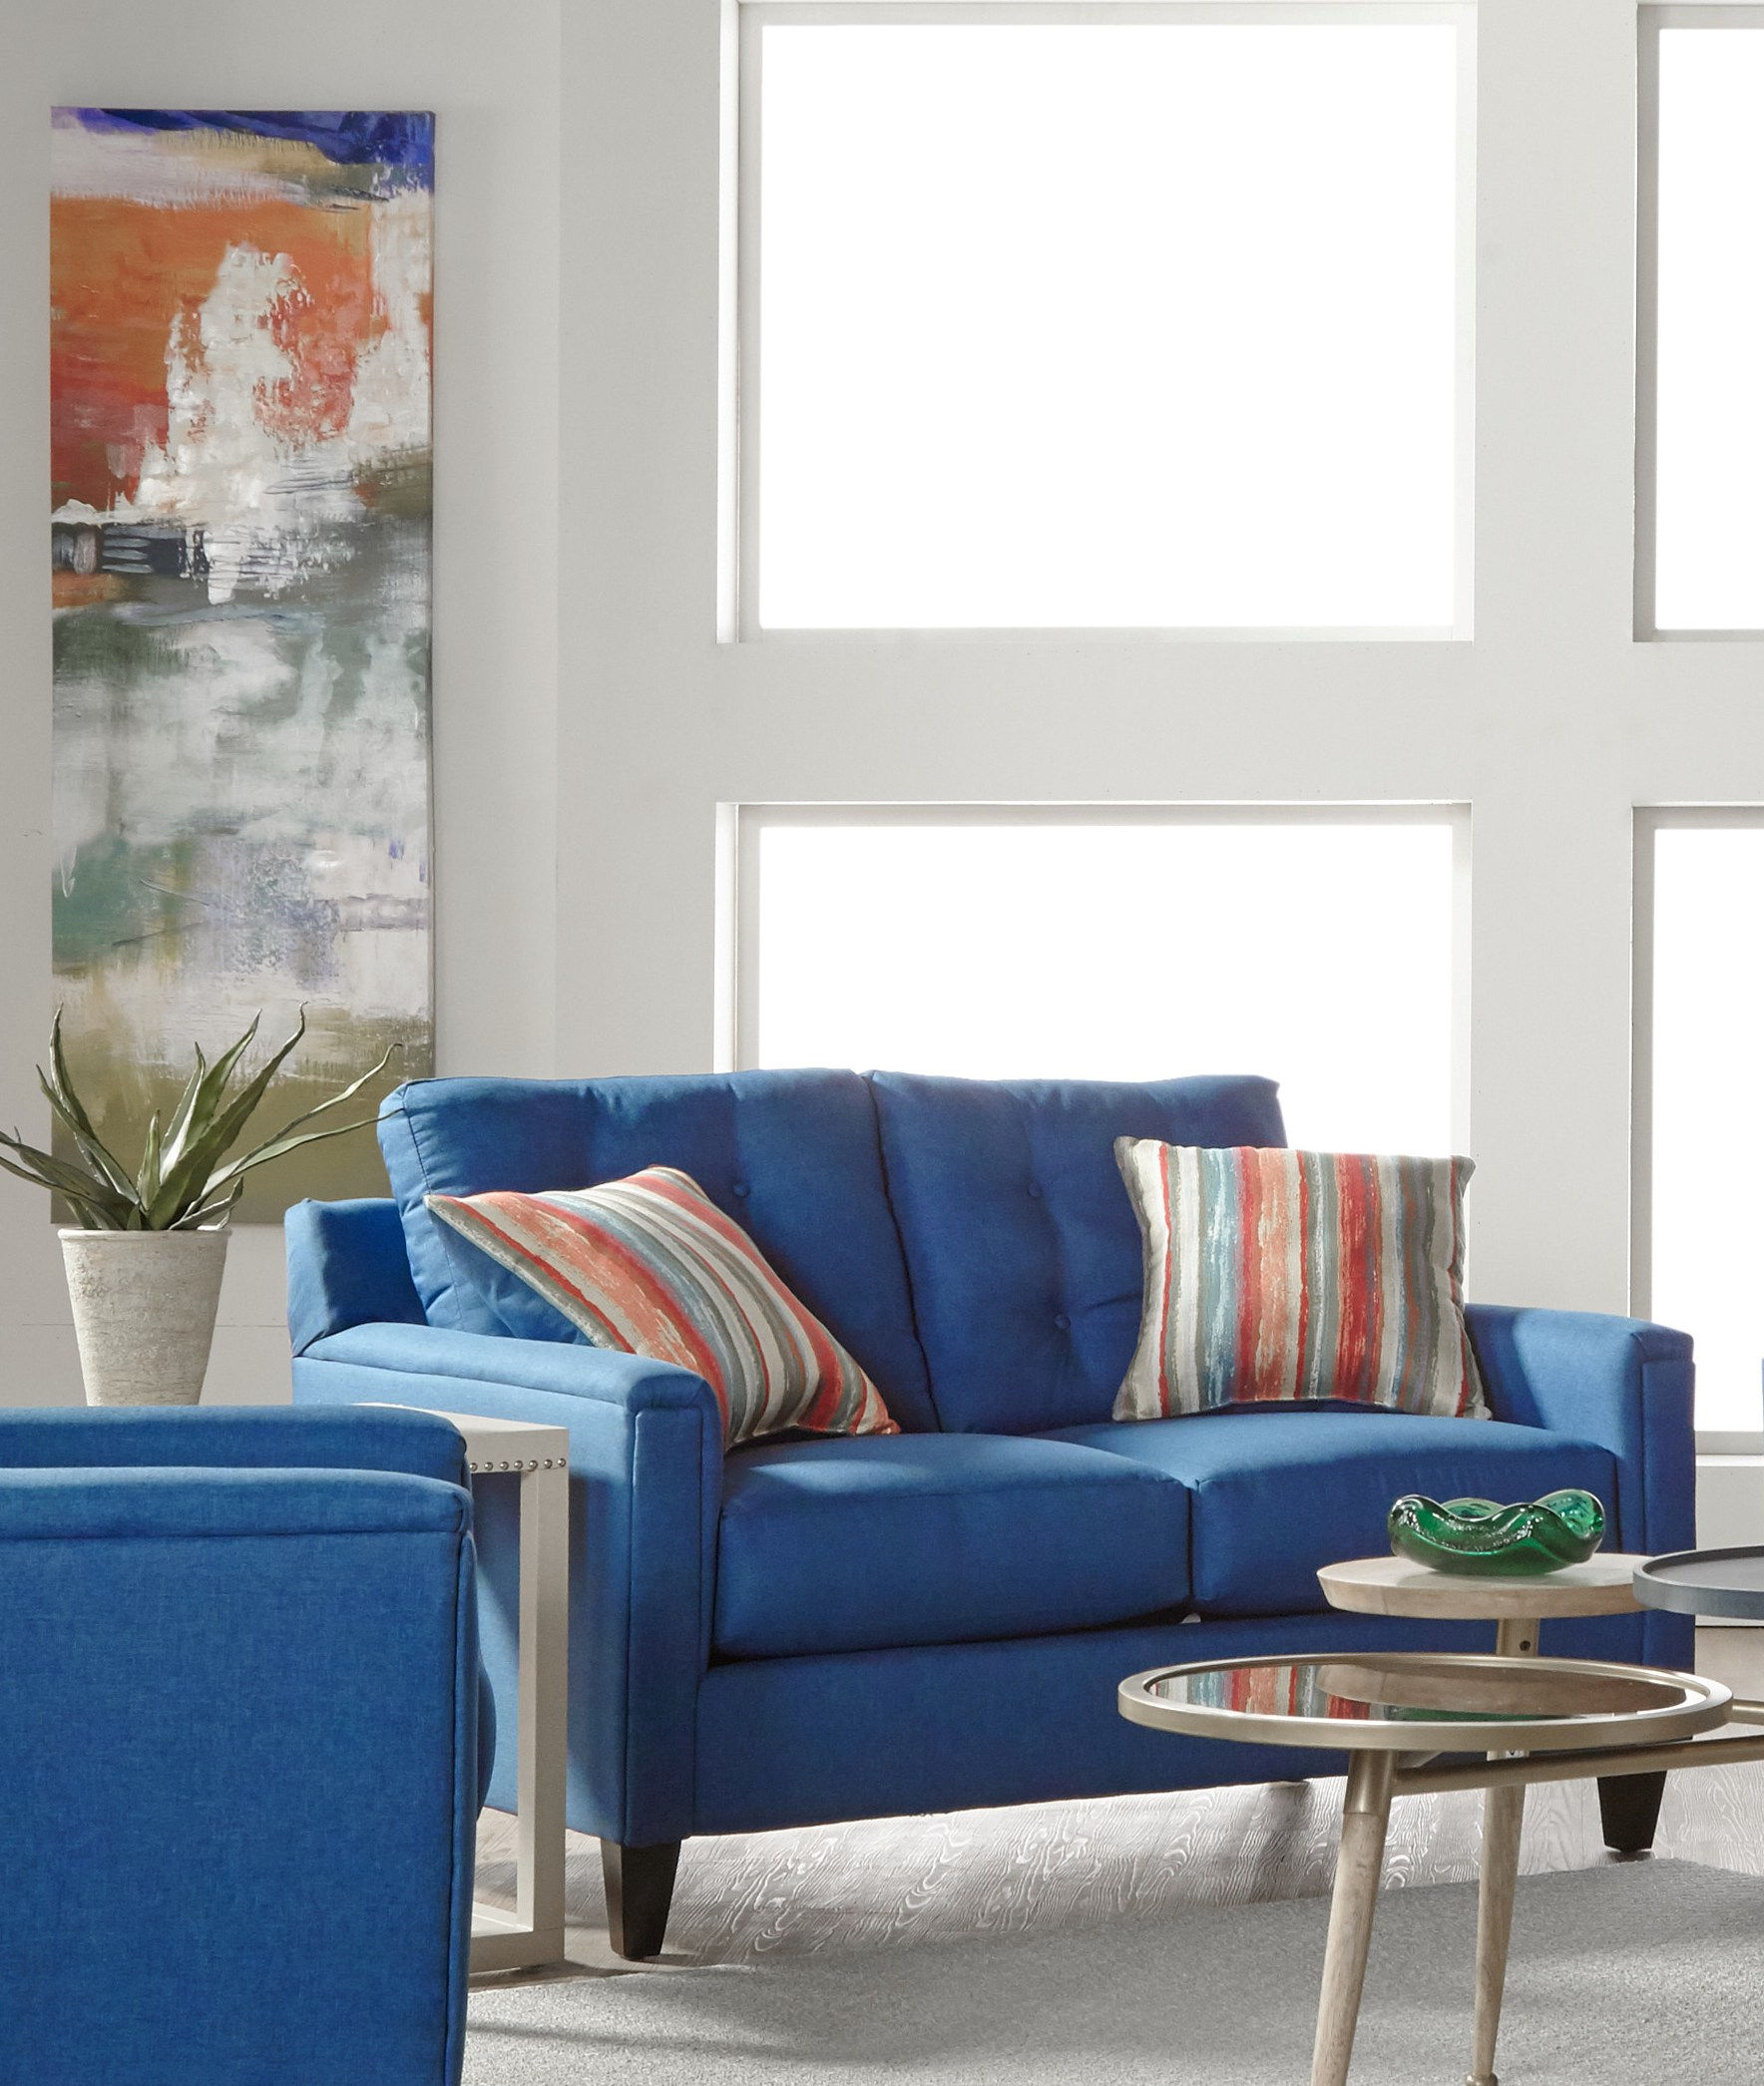 Phenomenal Serta 6800 Series Jitterbug Denim Loveseat The Classy Home Gmtry Best Dining Table And Chair Ideas Images Gmtryco